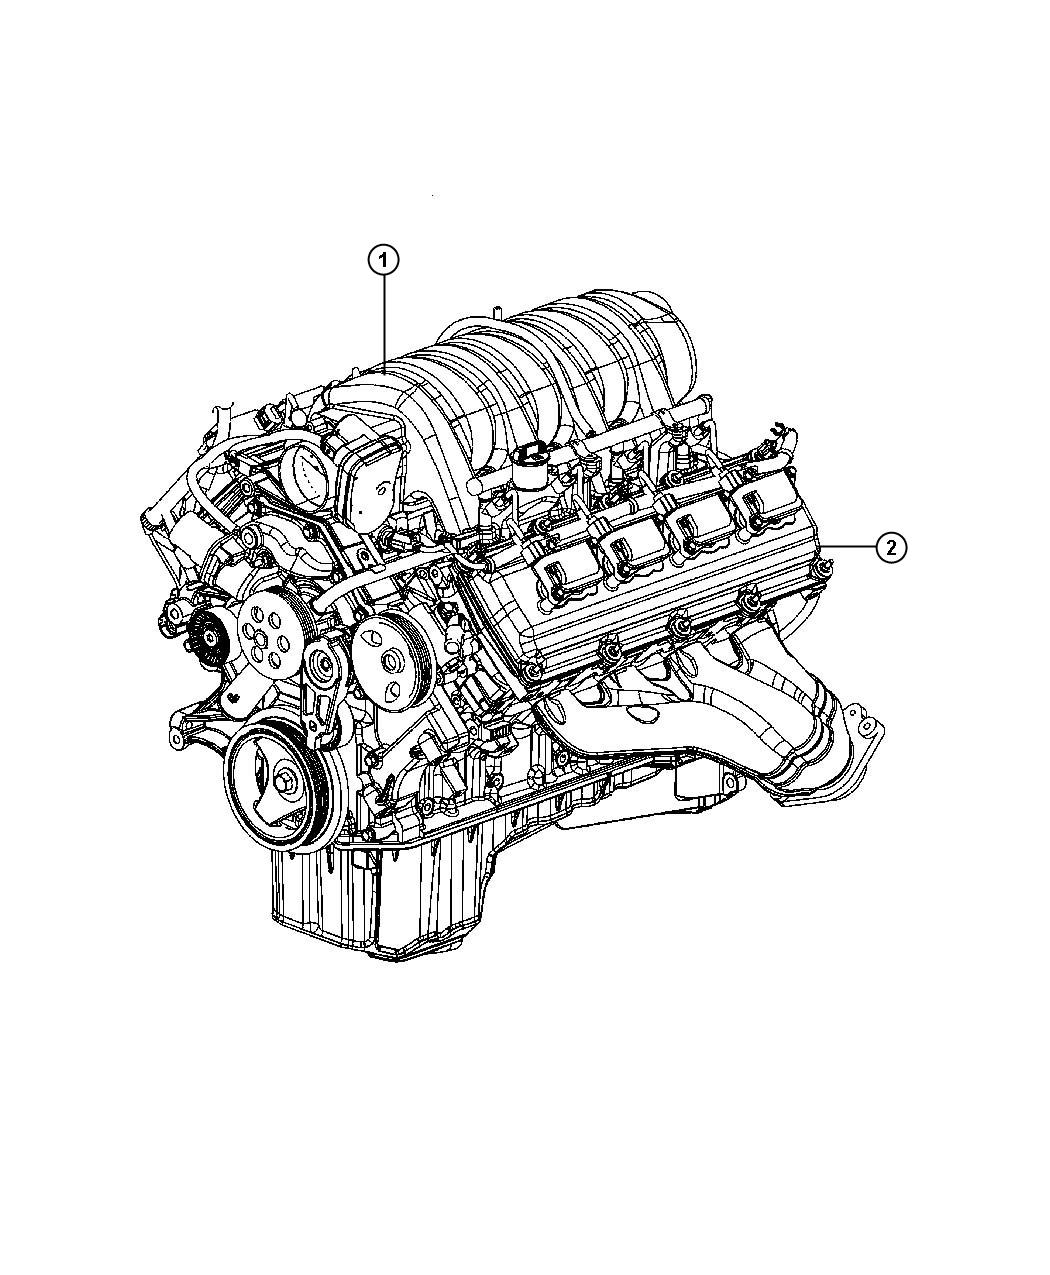 Dodge Challenger Engine Long Block Service